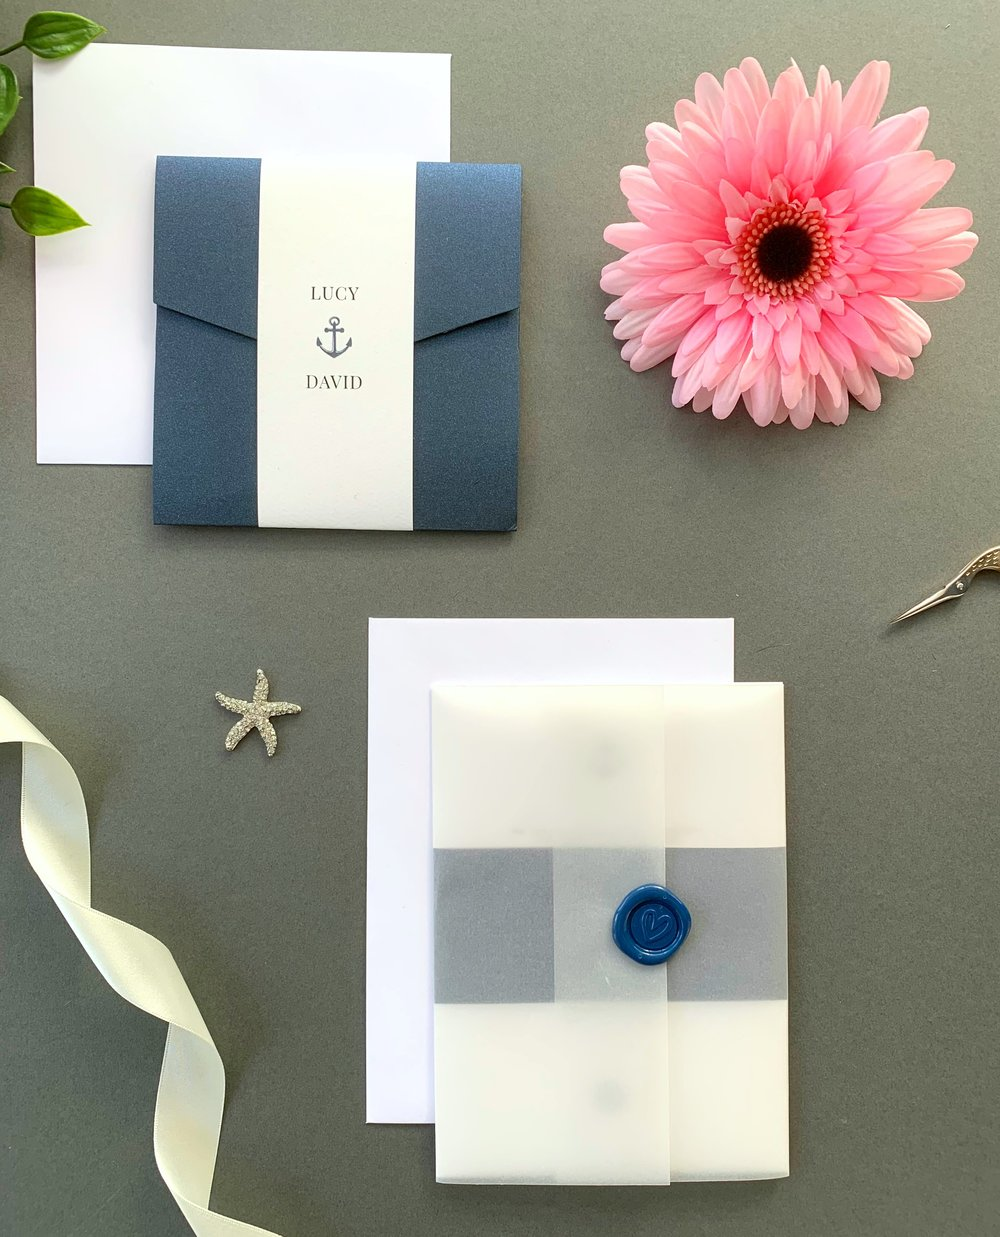 Canary Wharf Pocketfold Suite with Paper Belly Band, Invitation Suite with Paper Belly Band, Vellum Jacket and Navy Blue Wax Seal